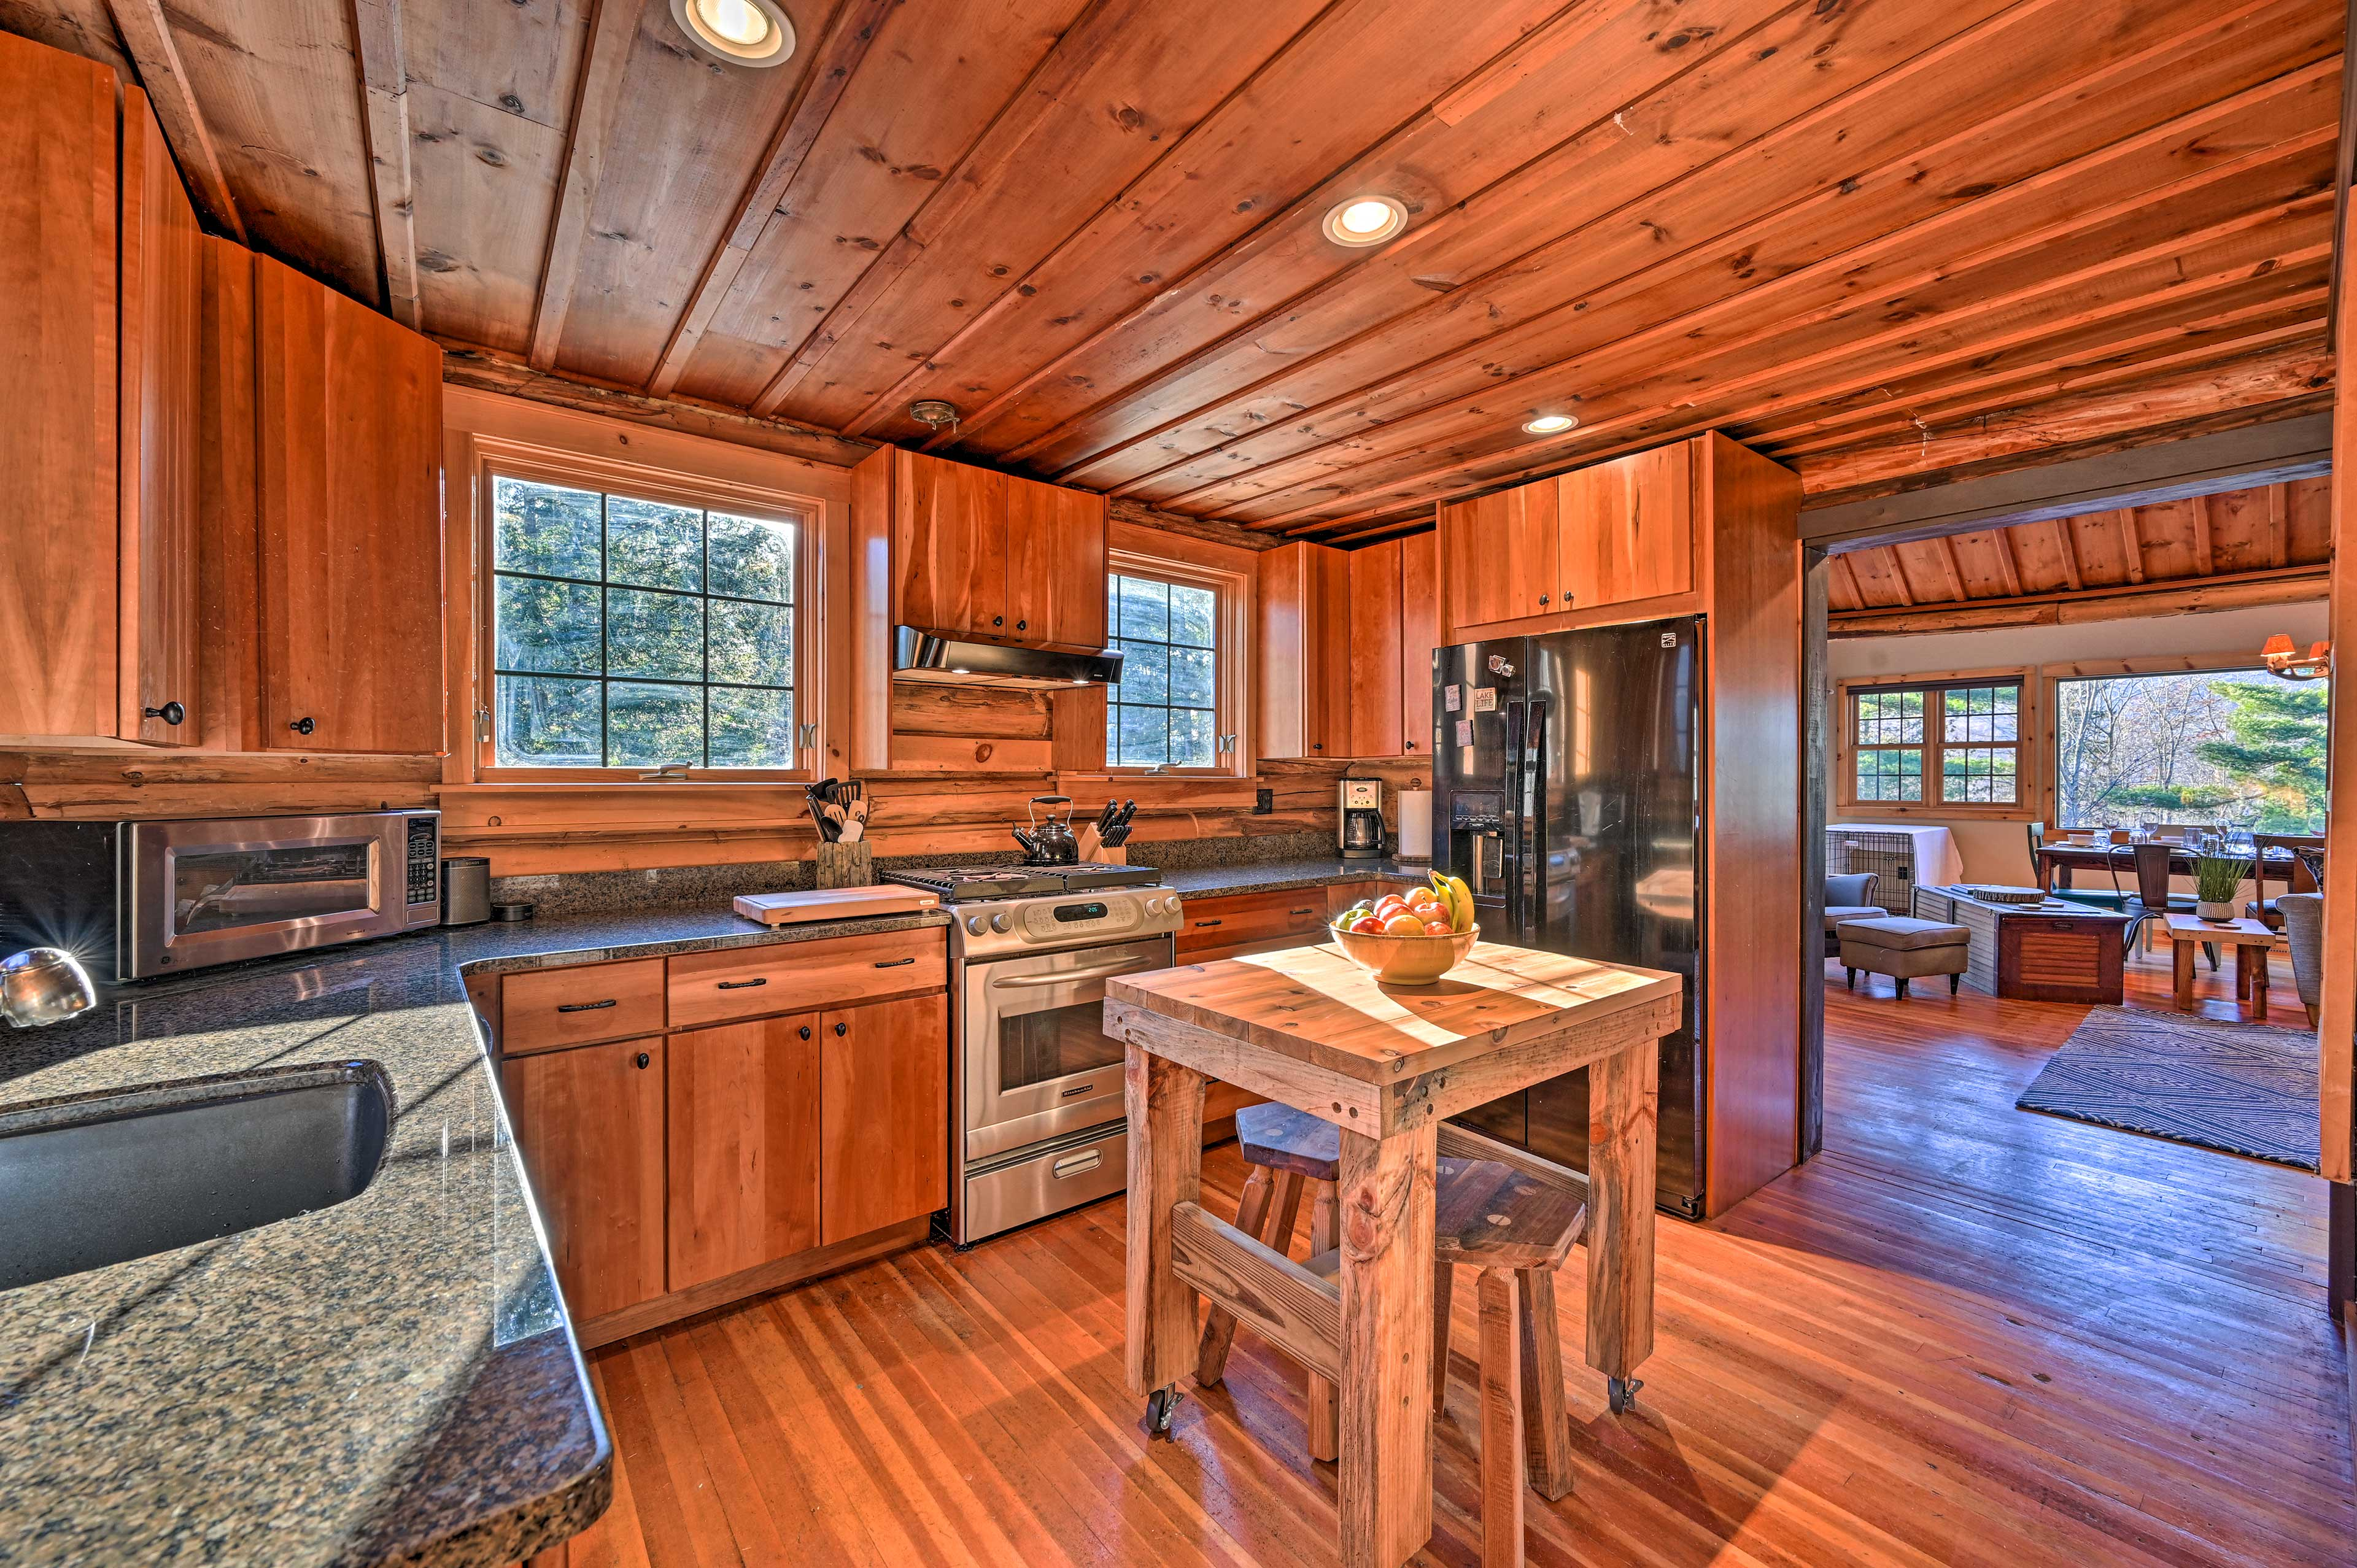 The wooden butcher block table competes this kitchen.